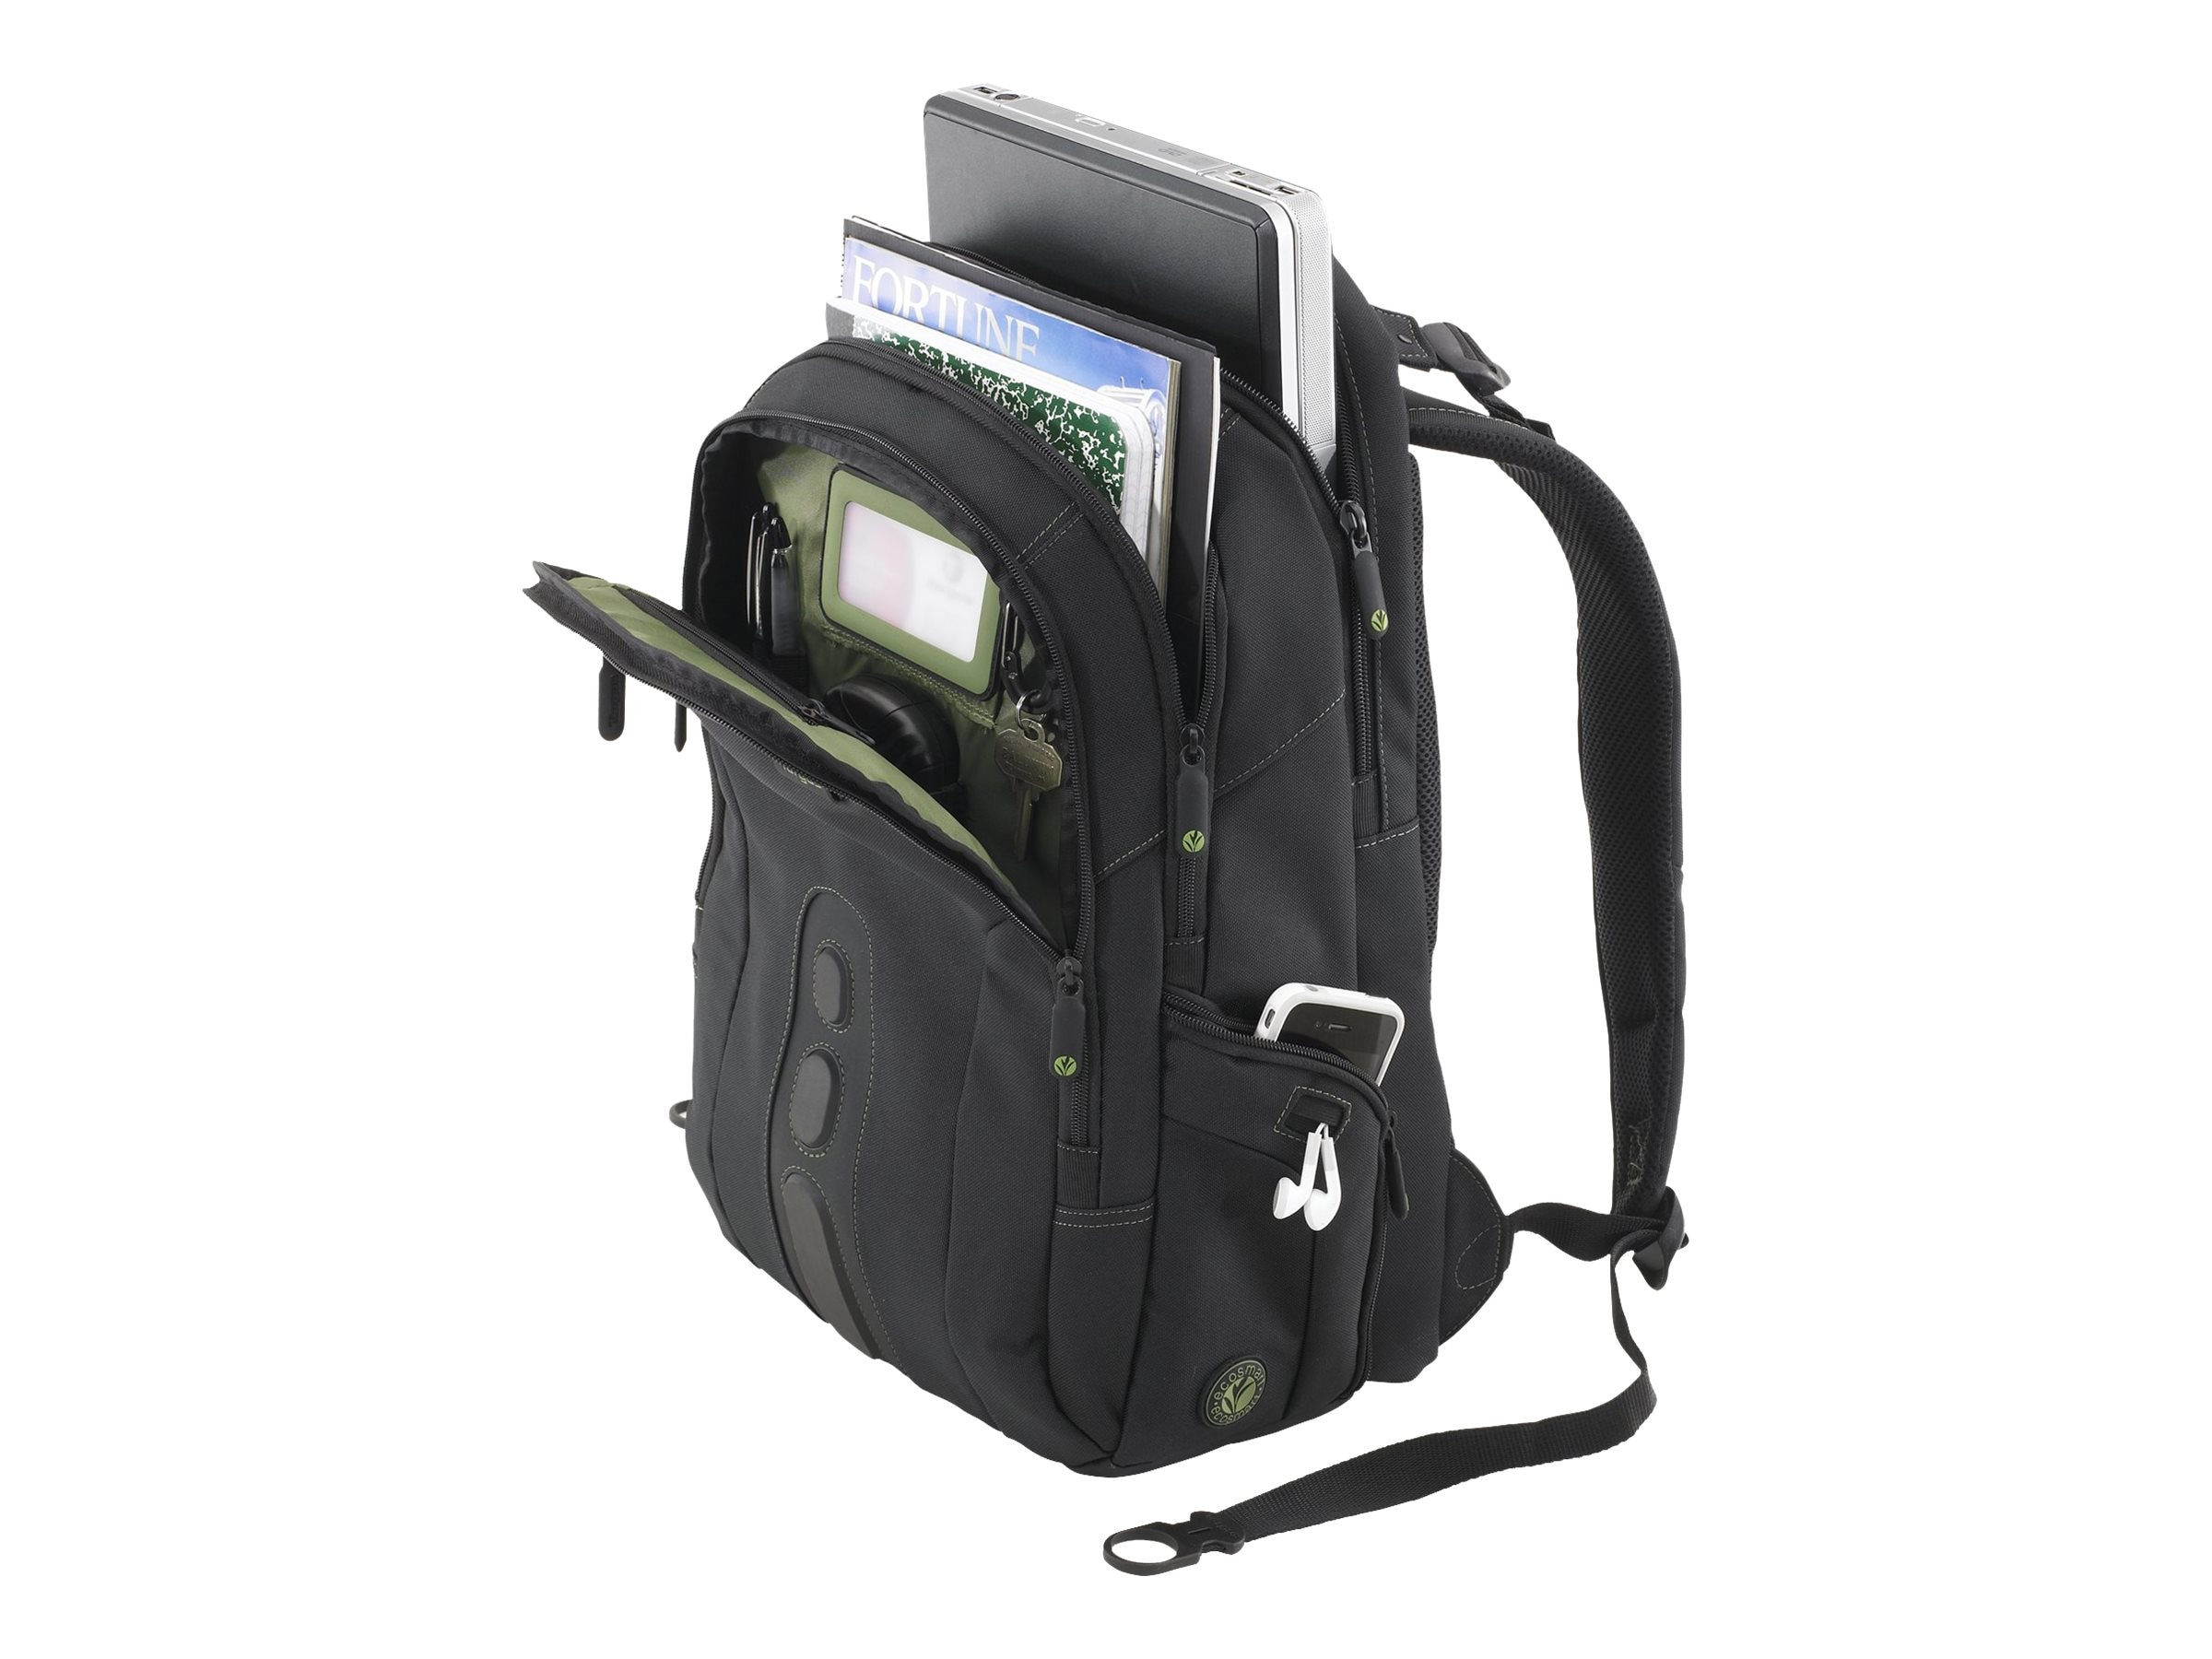 Targus Spruce EcoSmart 15.6 Backpack, Black Green, TBB013US, 9568129, Carrying Cases - Notebook